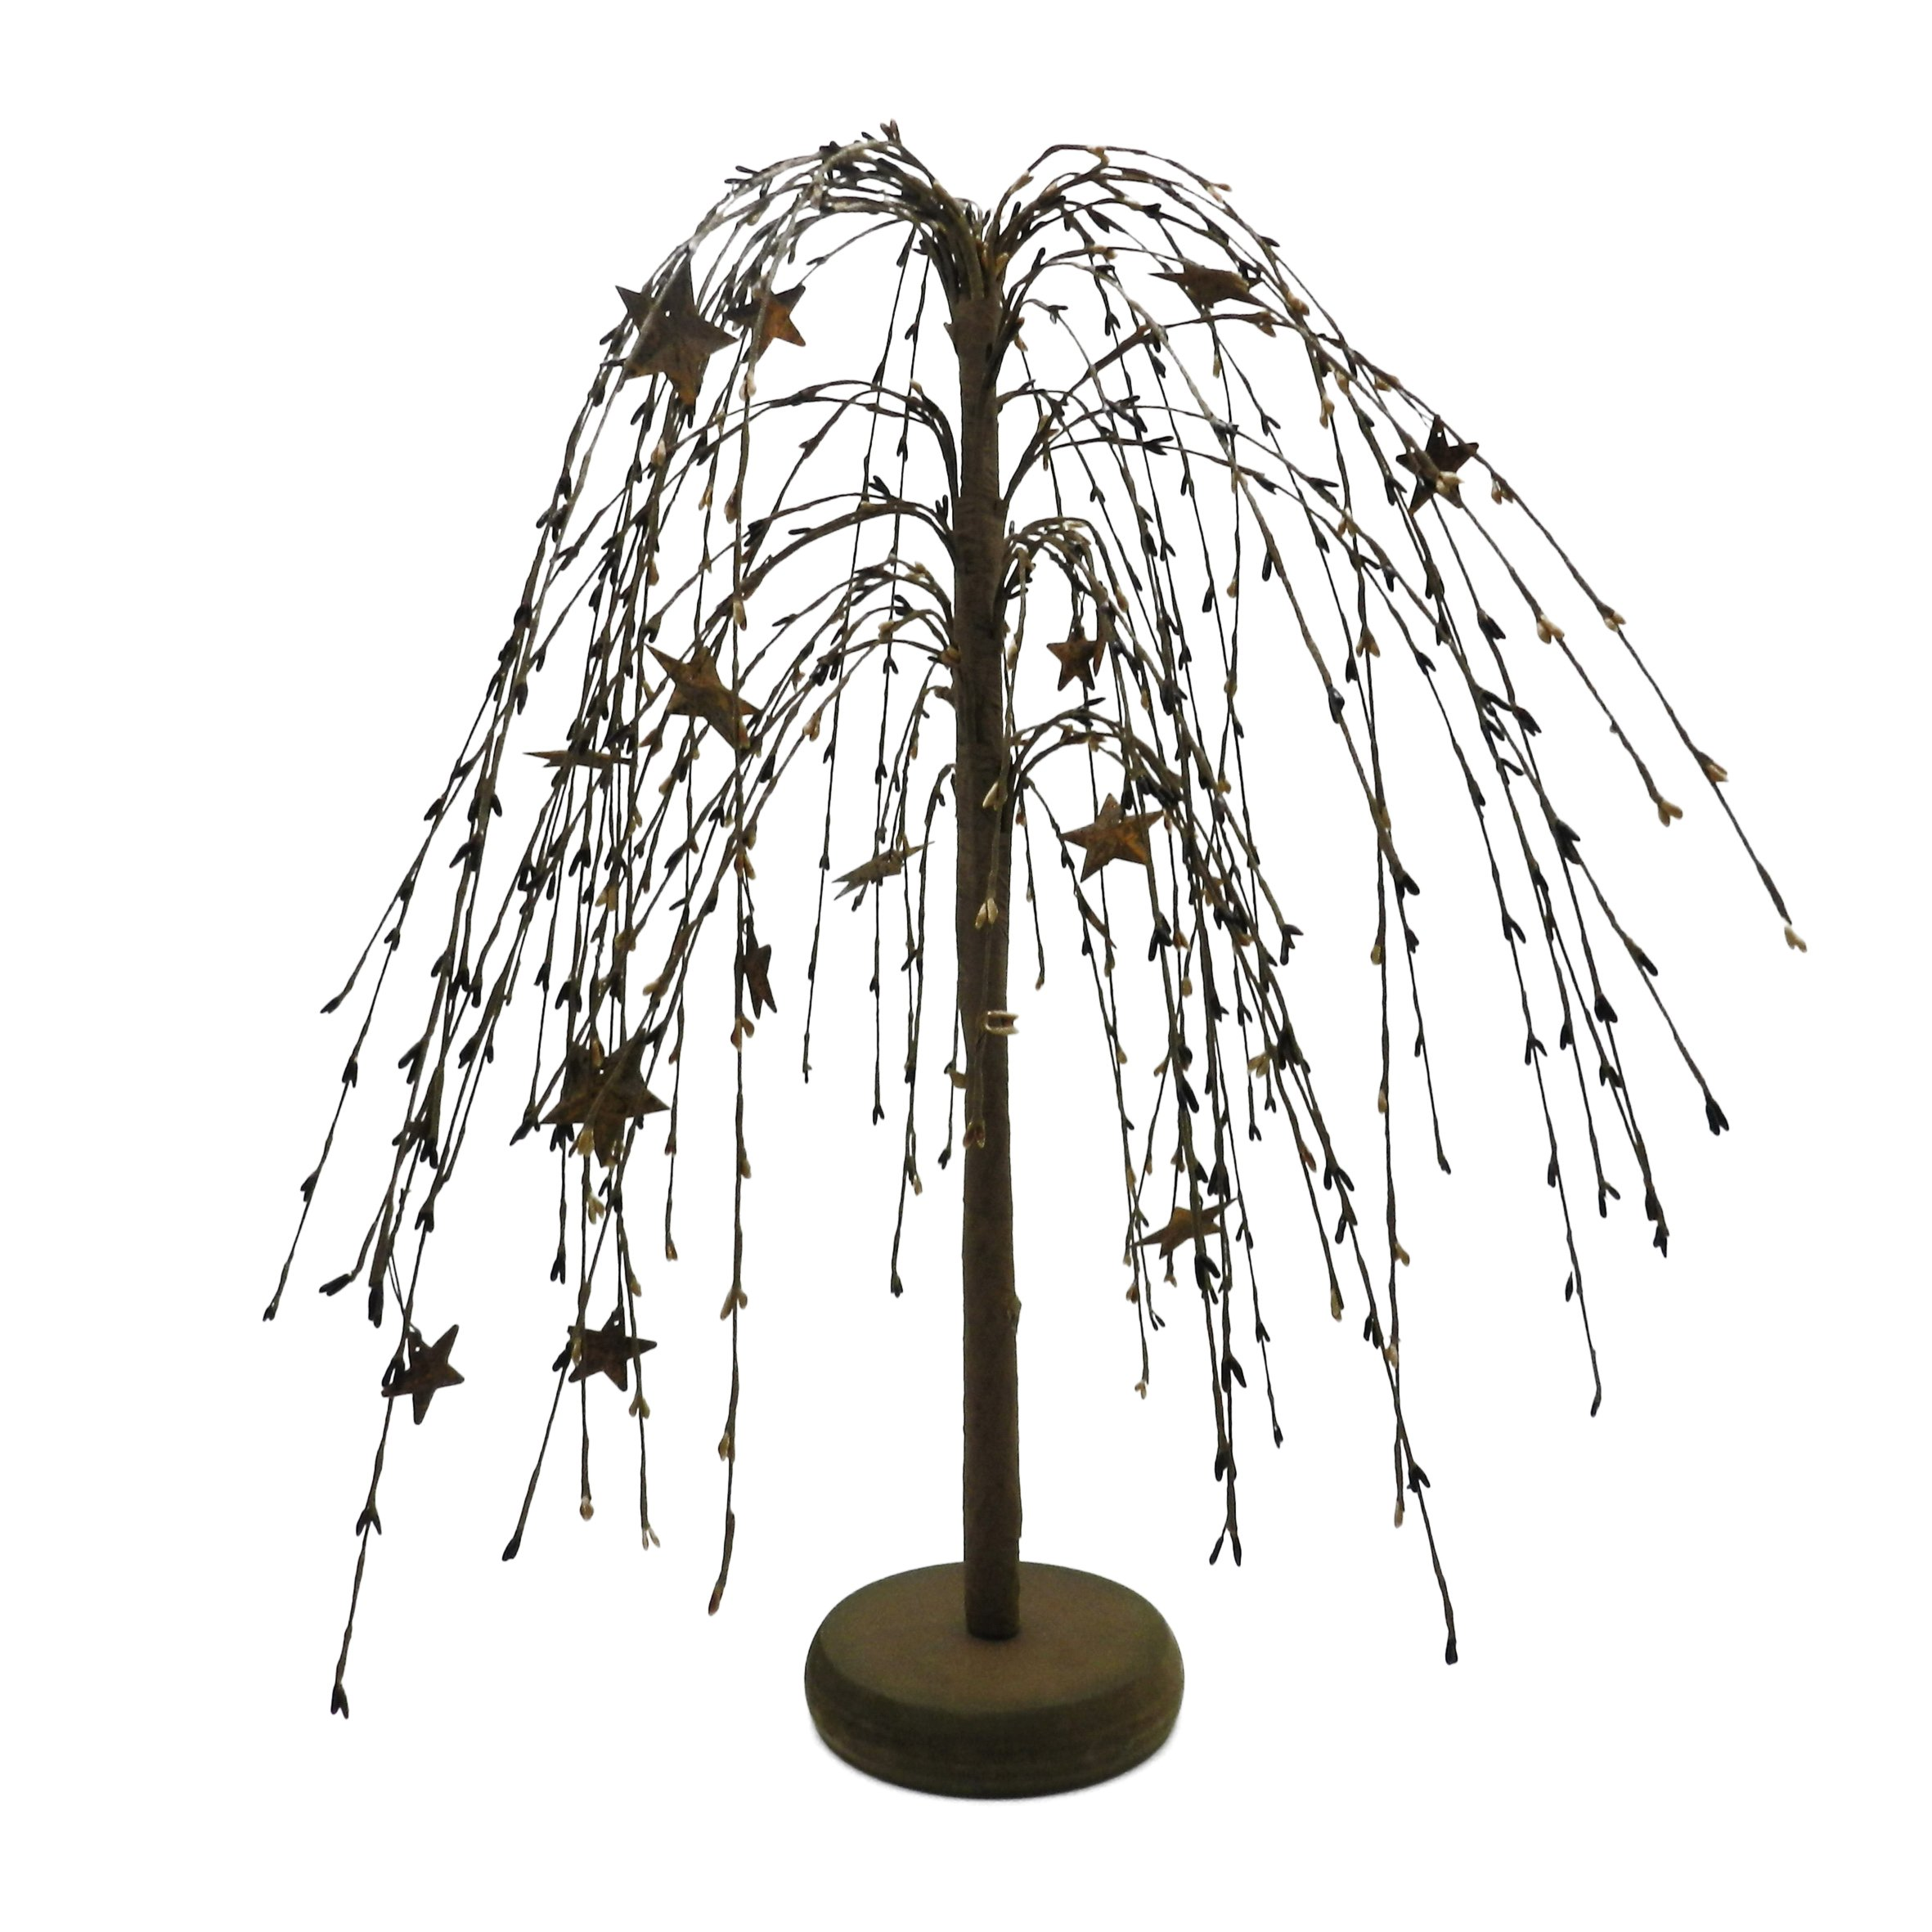 CVHOMEDECO. Mustard Burgundy Black Pip Berries Weeping Willow Tree with Rusty Stars Primitive Vintage Decoration Art, 18-Inch